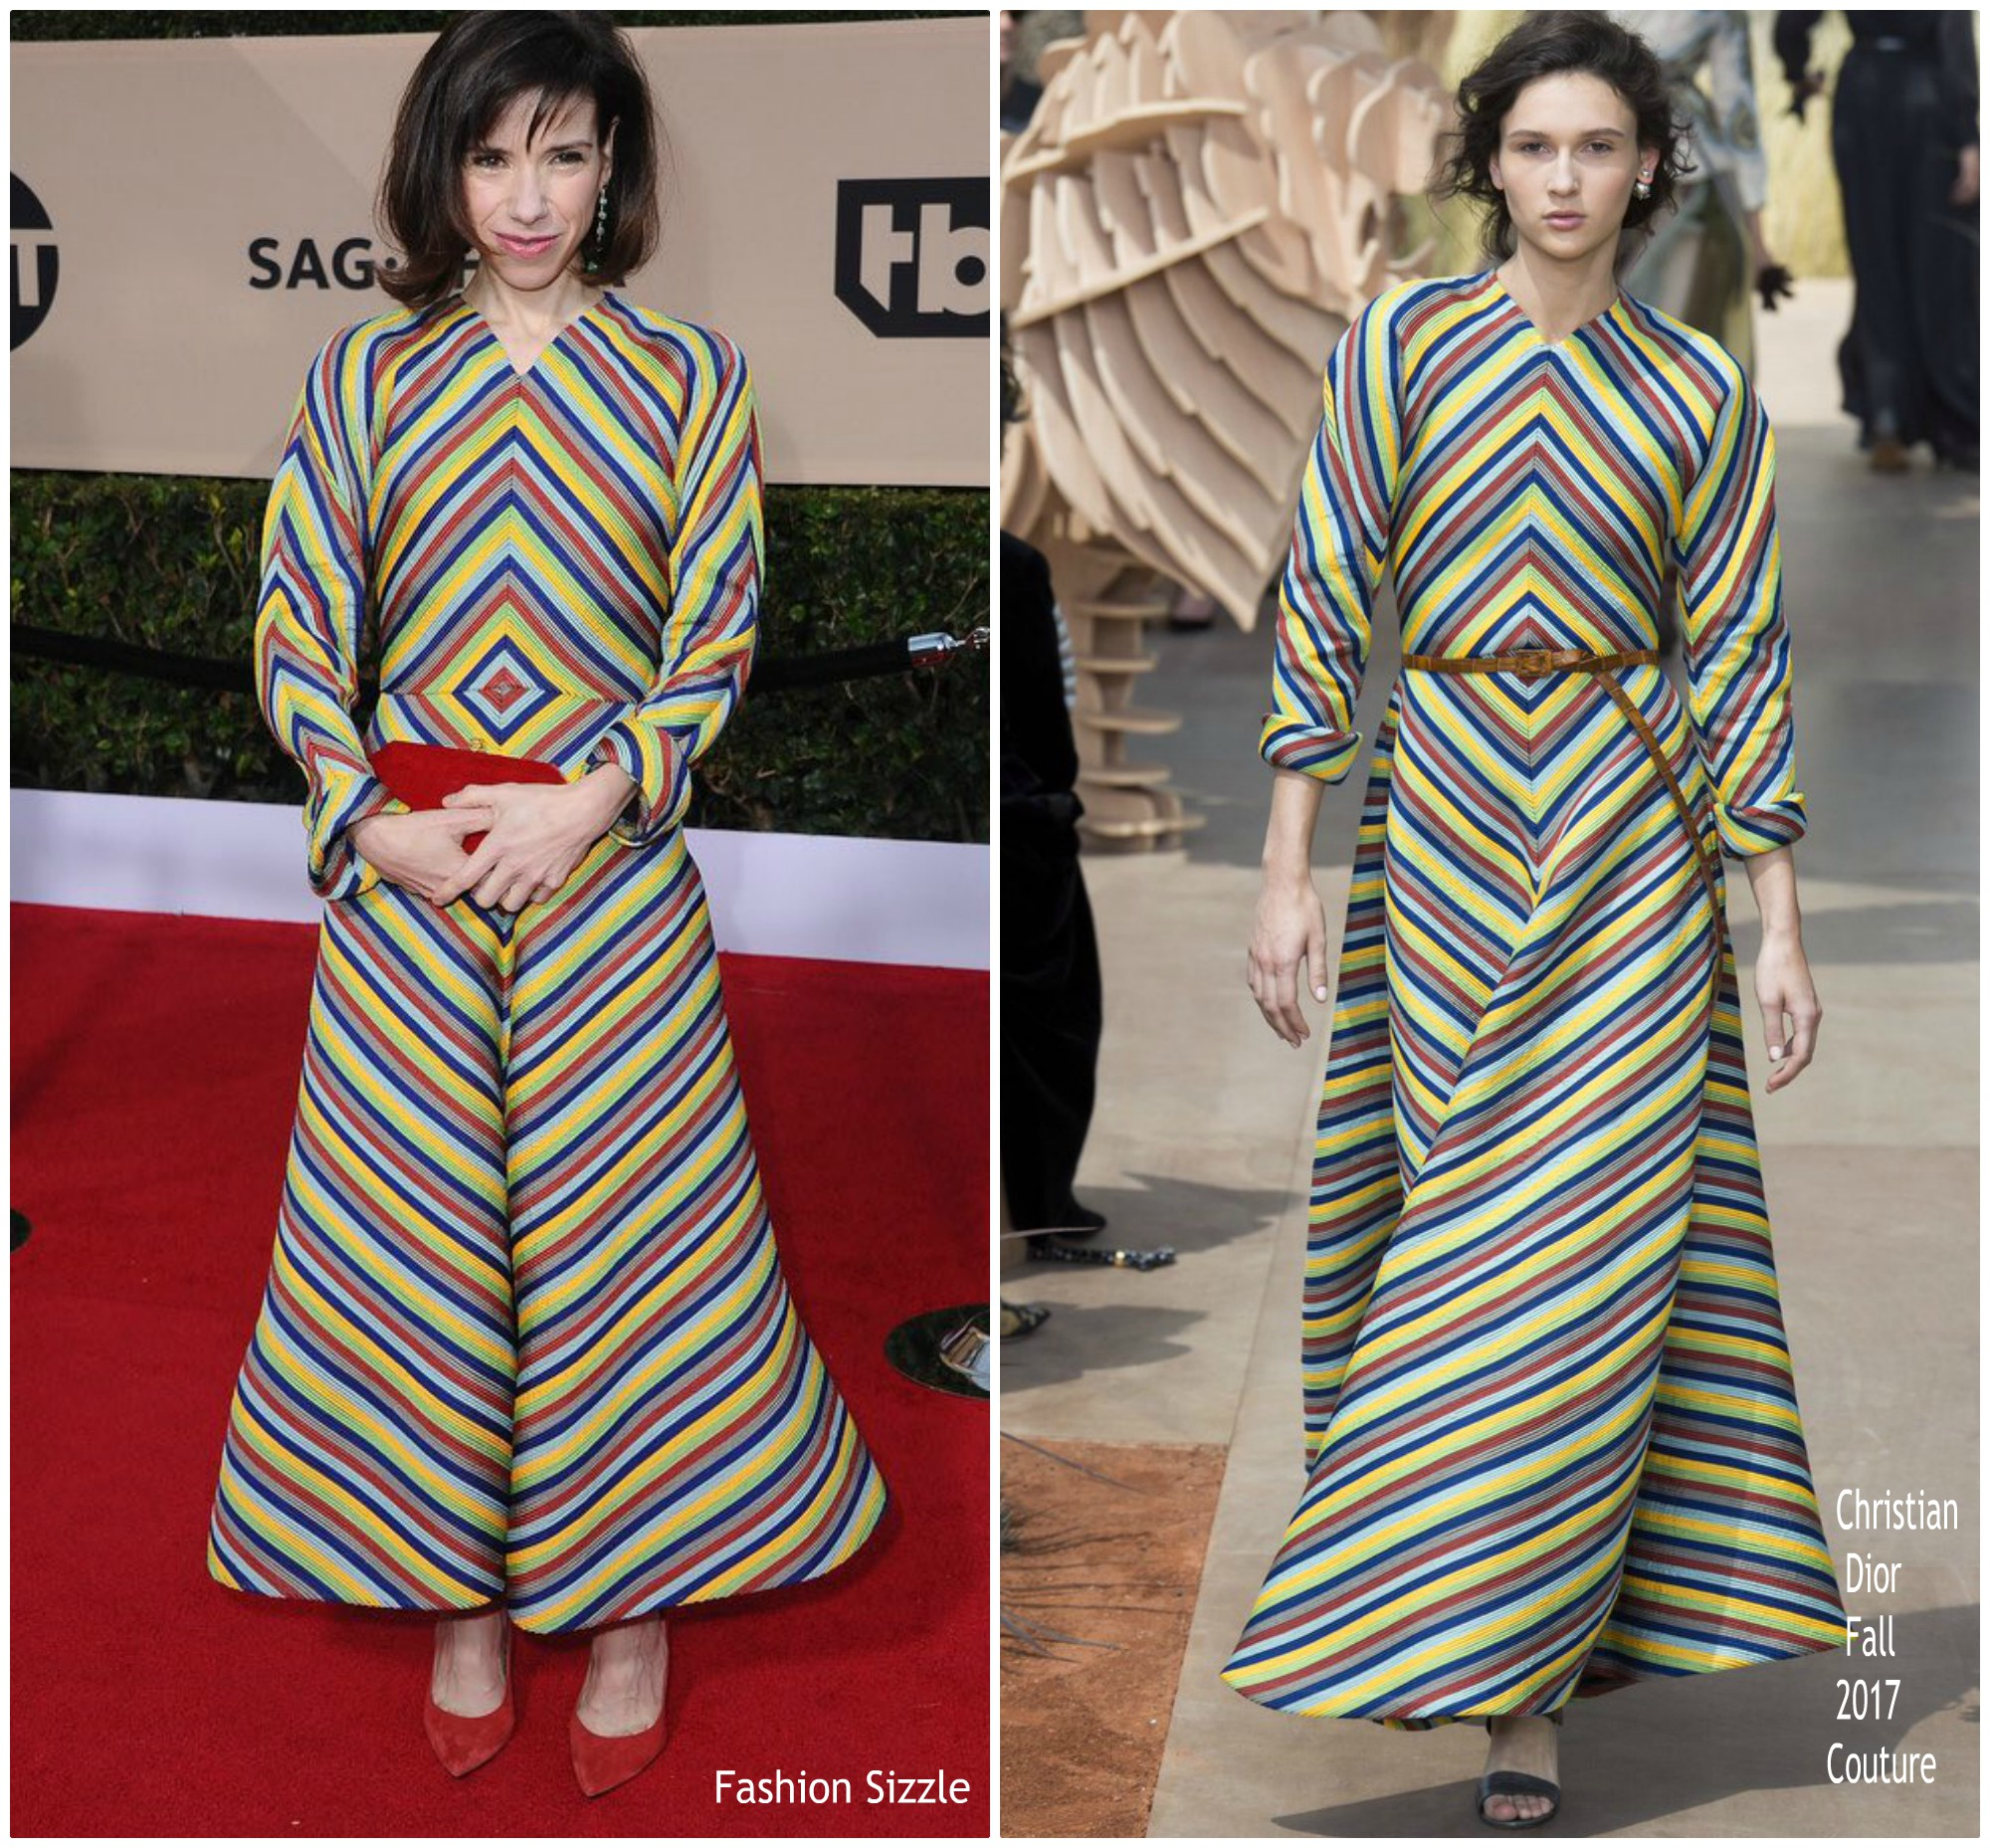 sally-hawkins-in-christian-dior-couture-2018-sag-awards